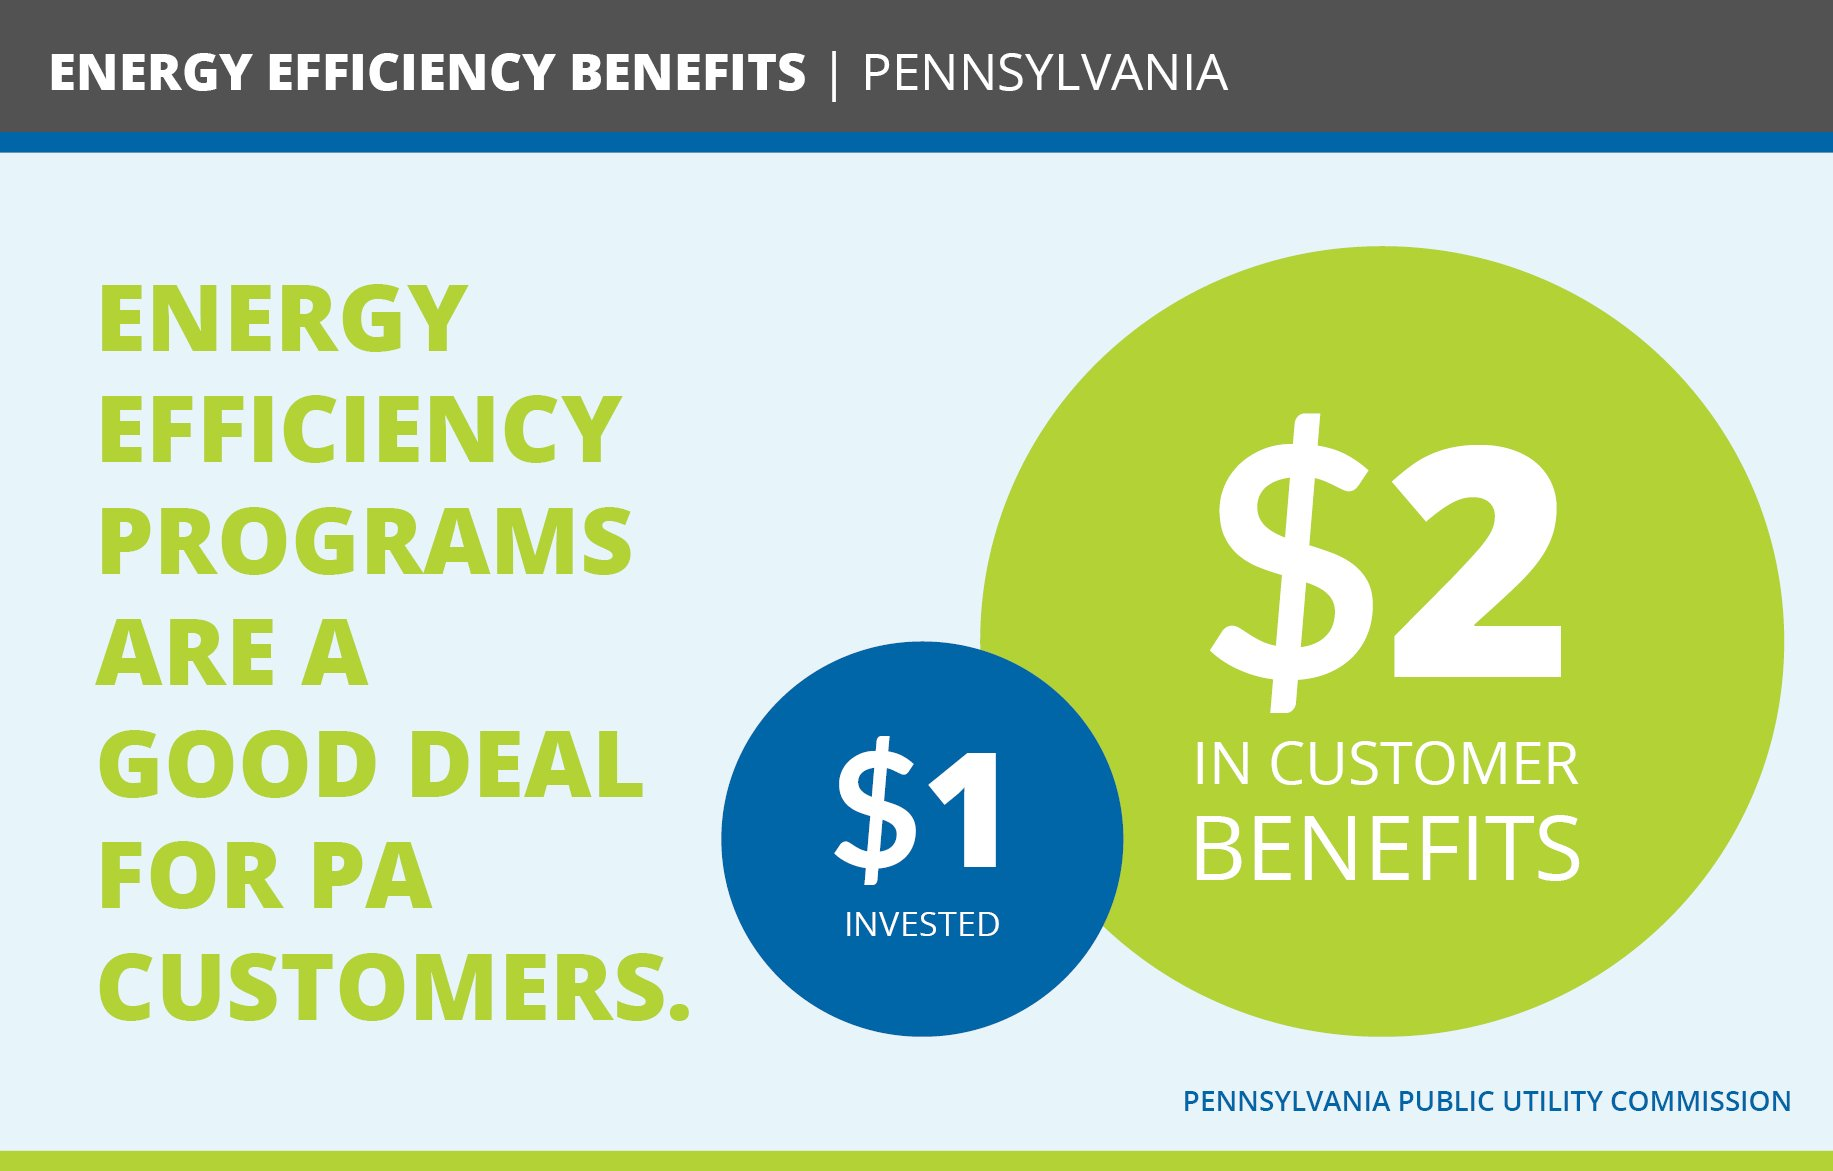 As #business leaders, we care about returns on investment. Pennsylvania businesses & citizens are getting a good deal on #energyefficiency. https://t.co/bM1SdYl69w